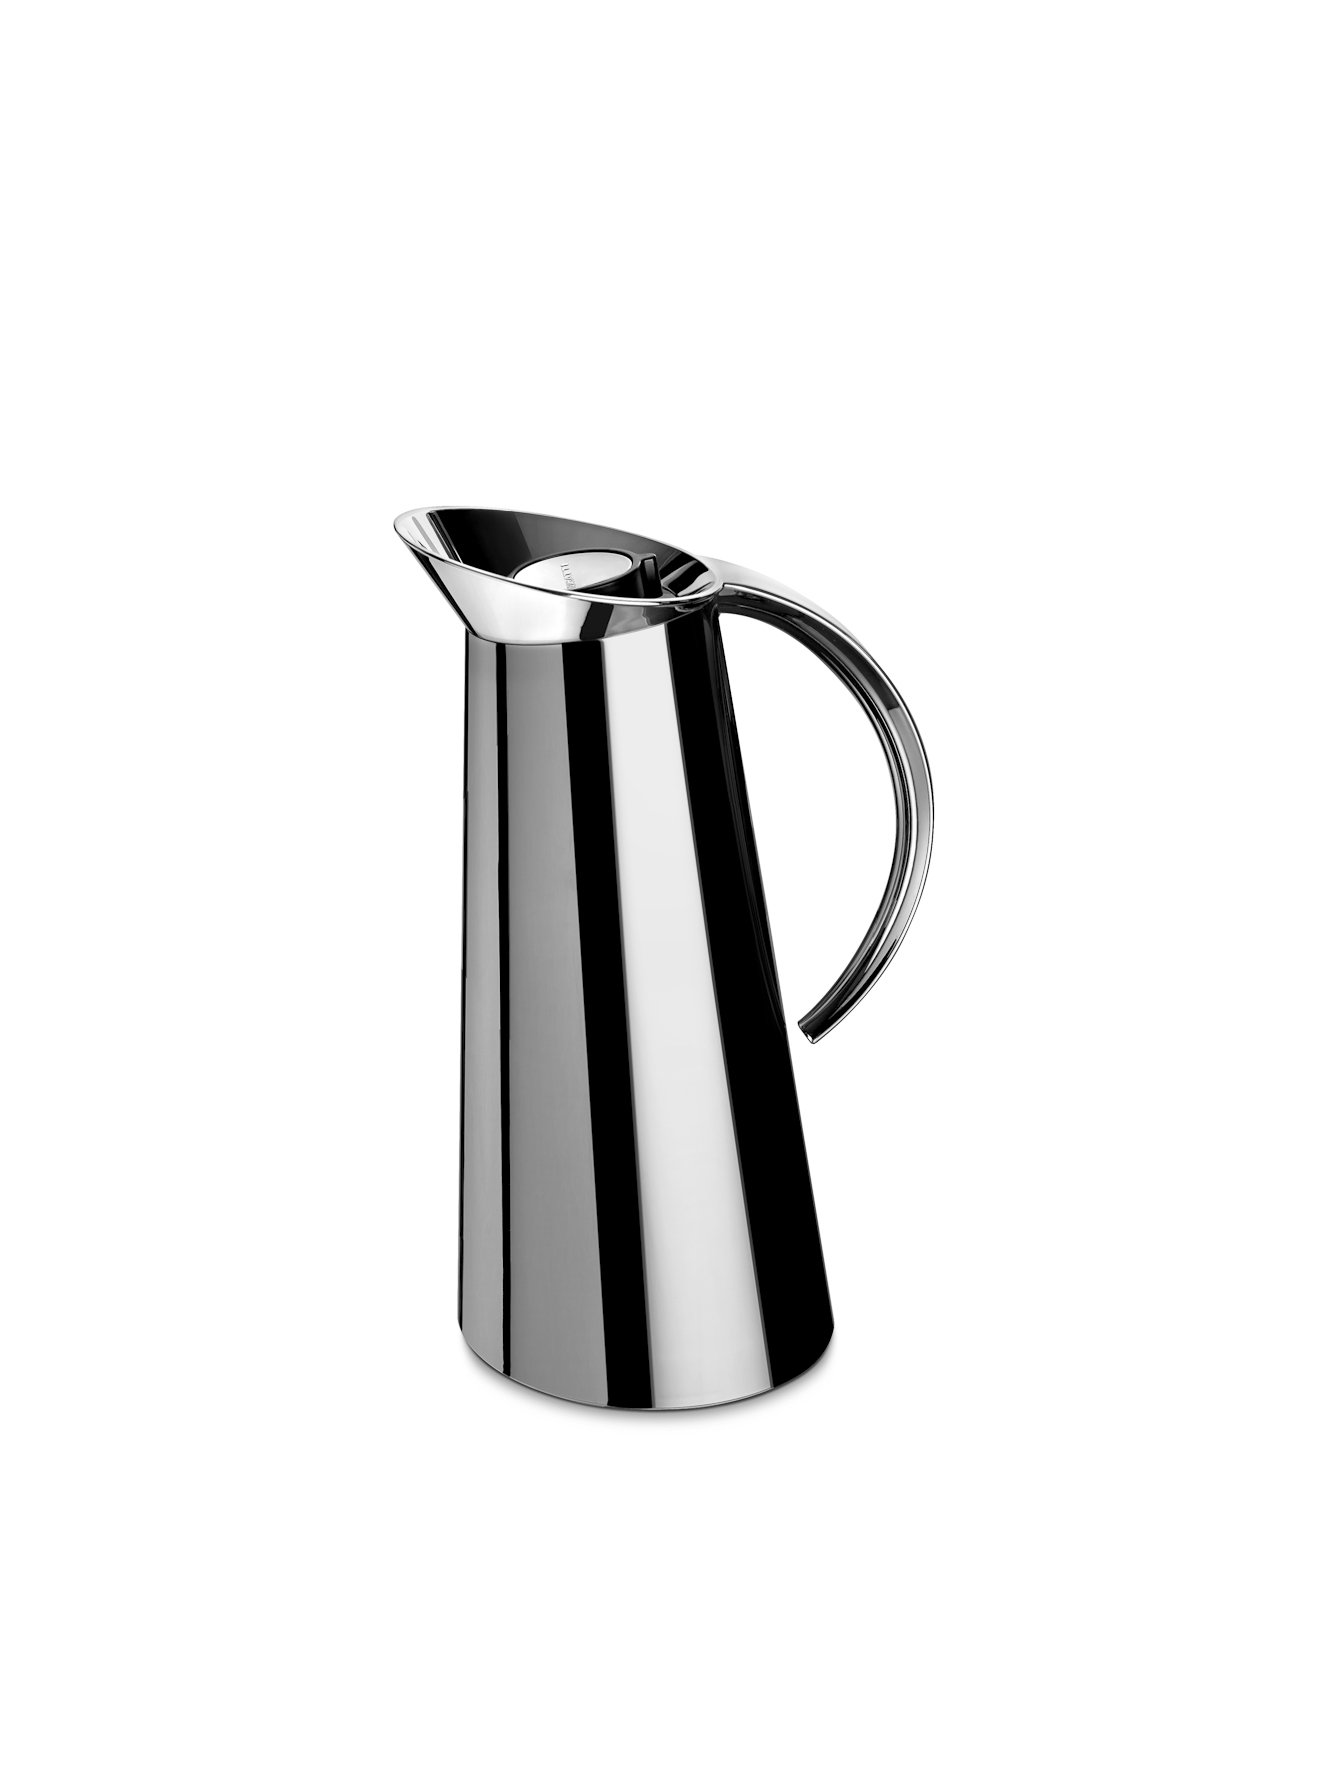 BUGATTI - Glamour Thermal carafe - Chromed